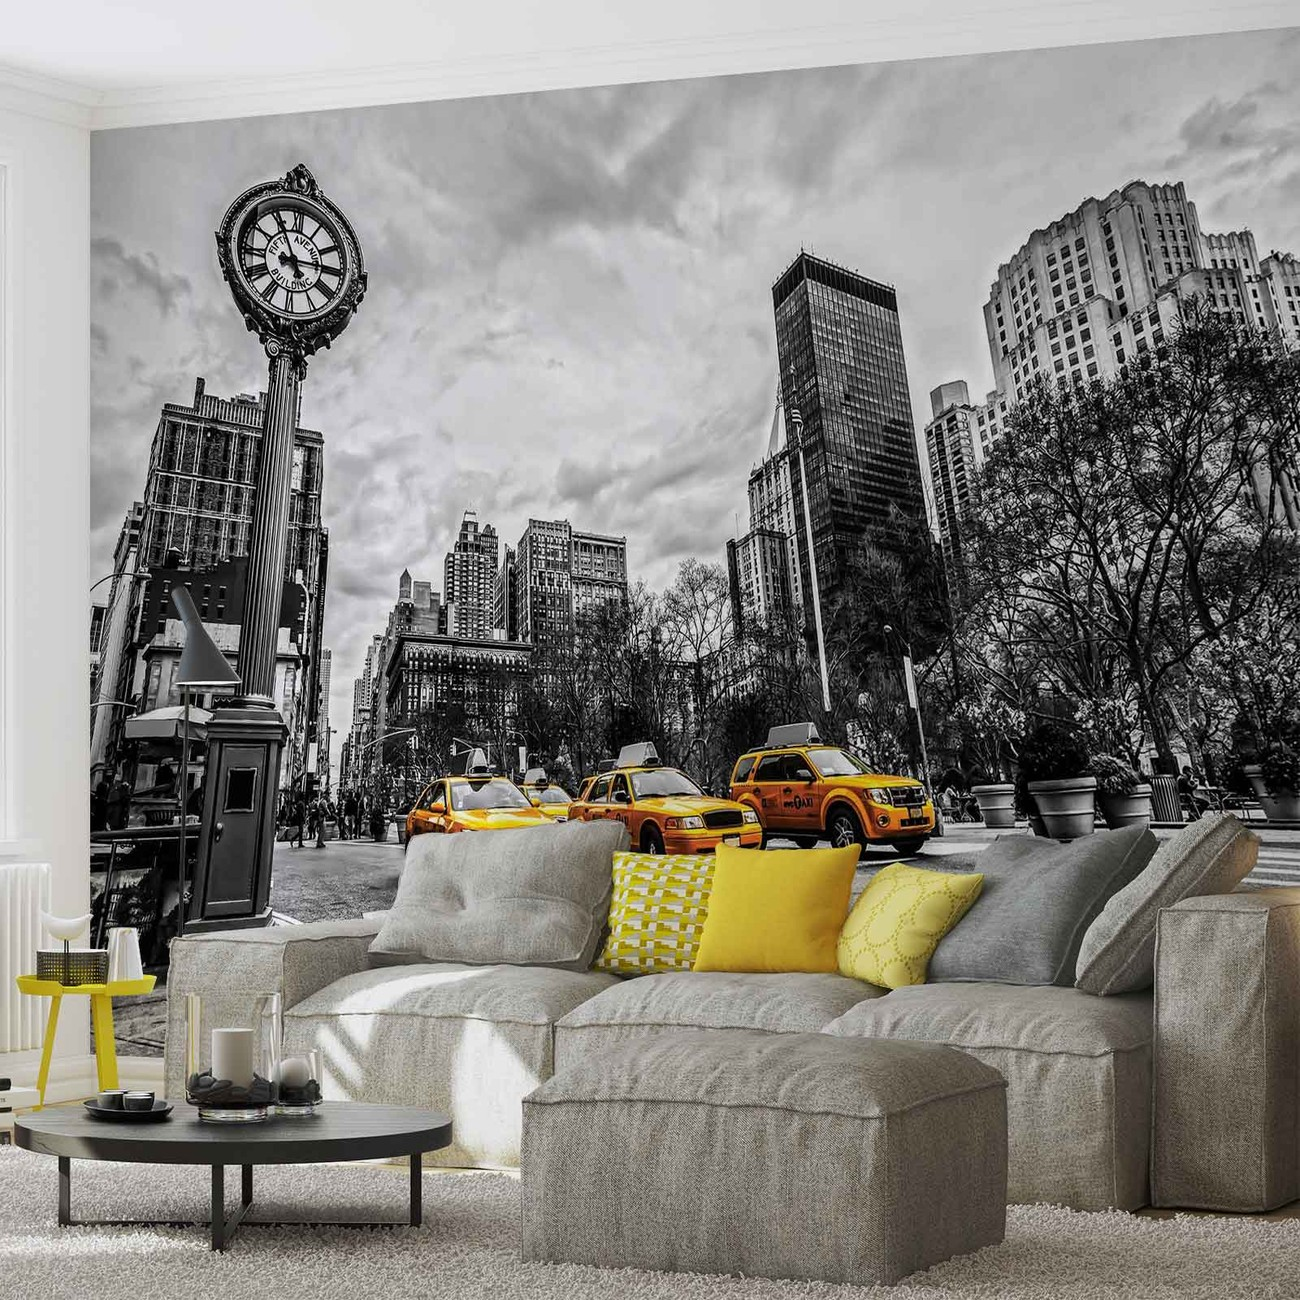 New york city cabs wall paper mural buy at europosters for Buy mural wallpaper